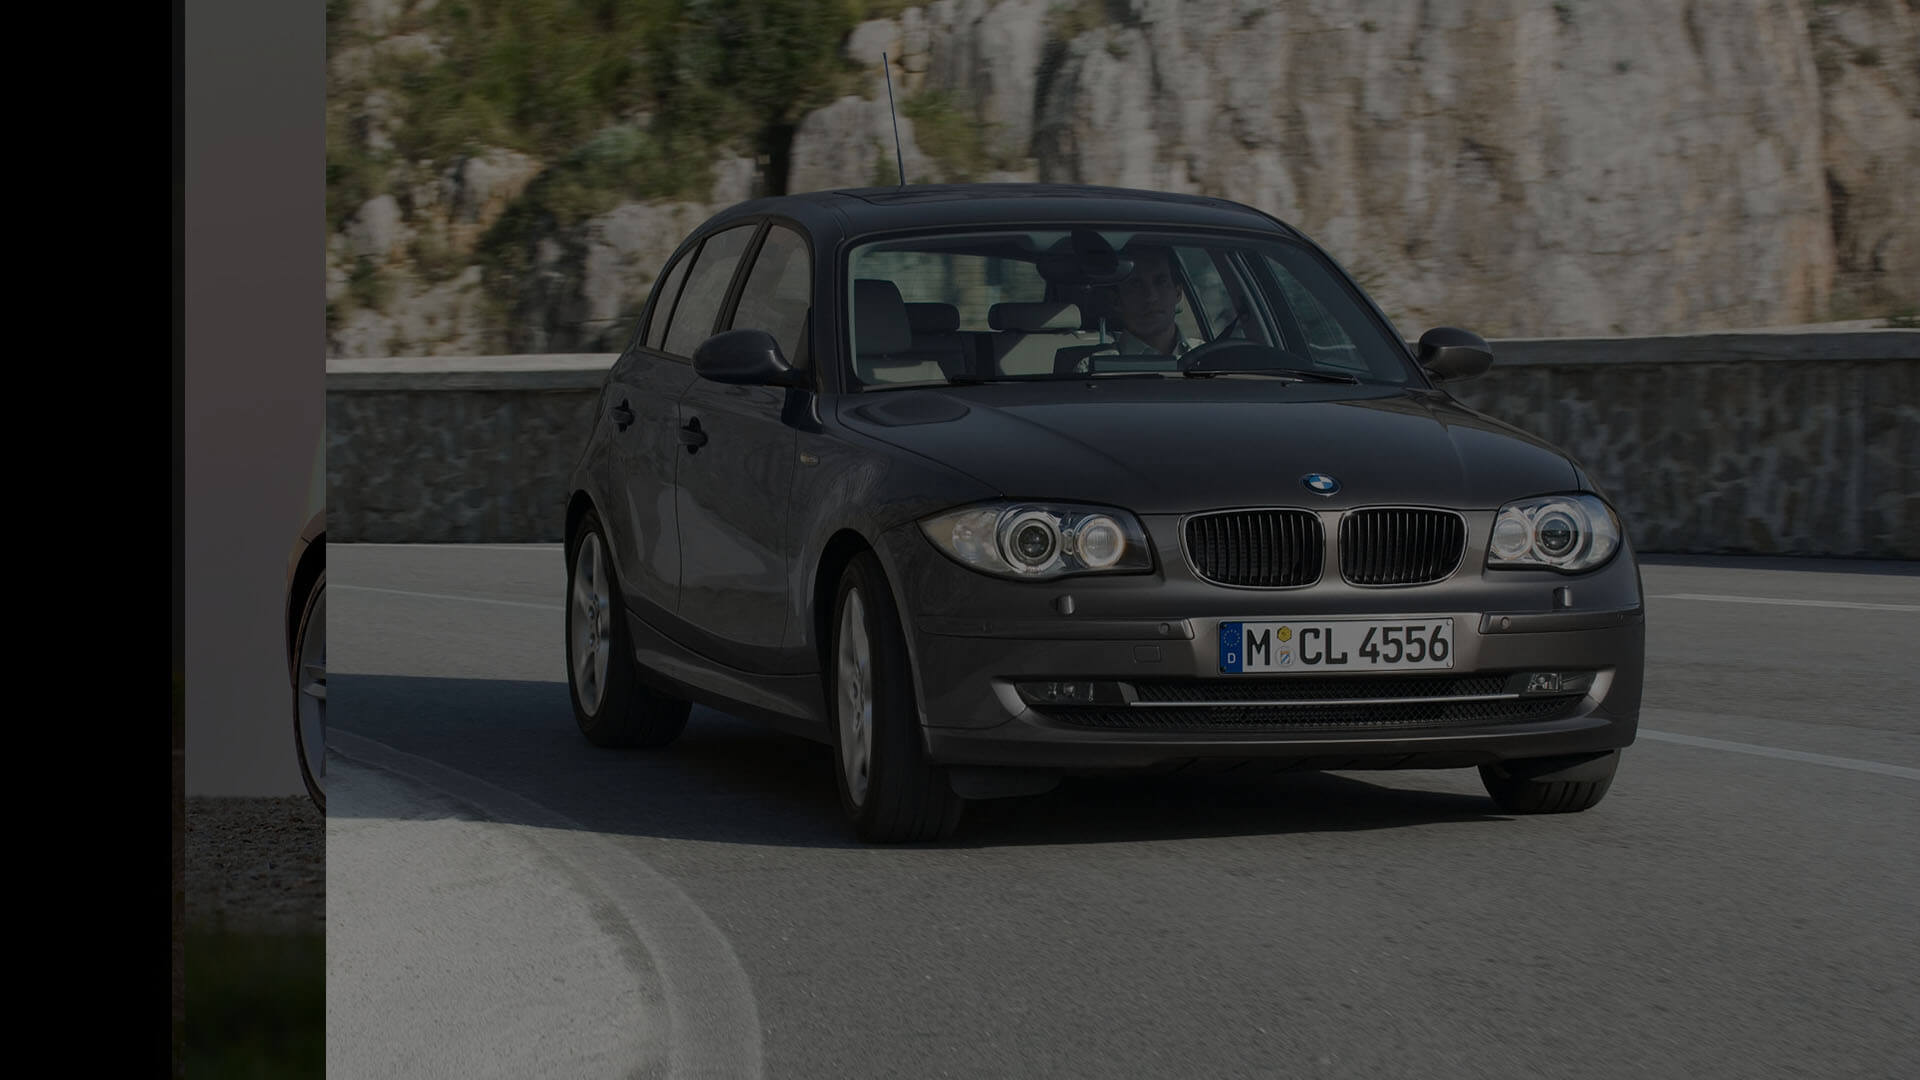 Bmw 1 Series 1 M E81e82e87e88 From 2008 Mit Carista Obd2